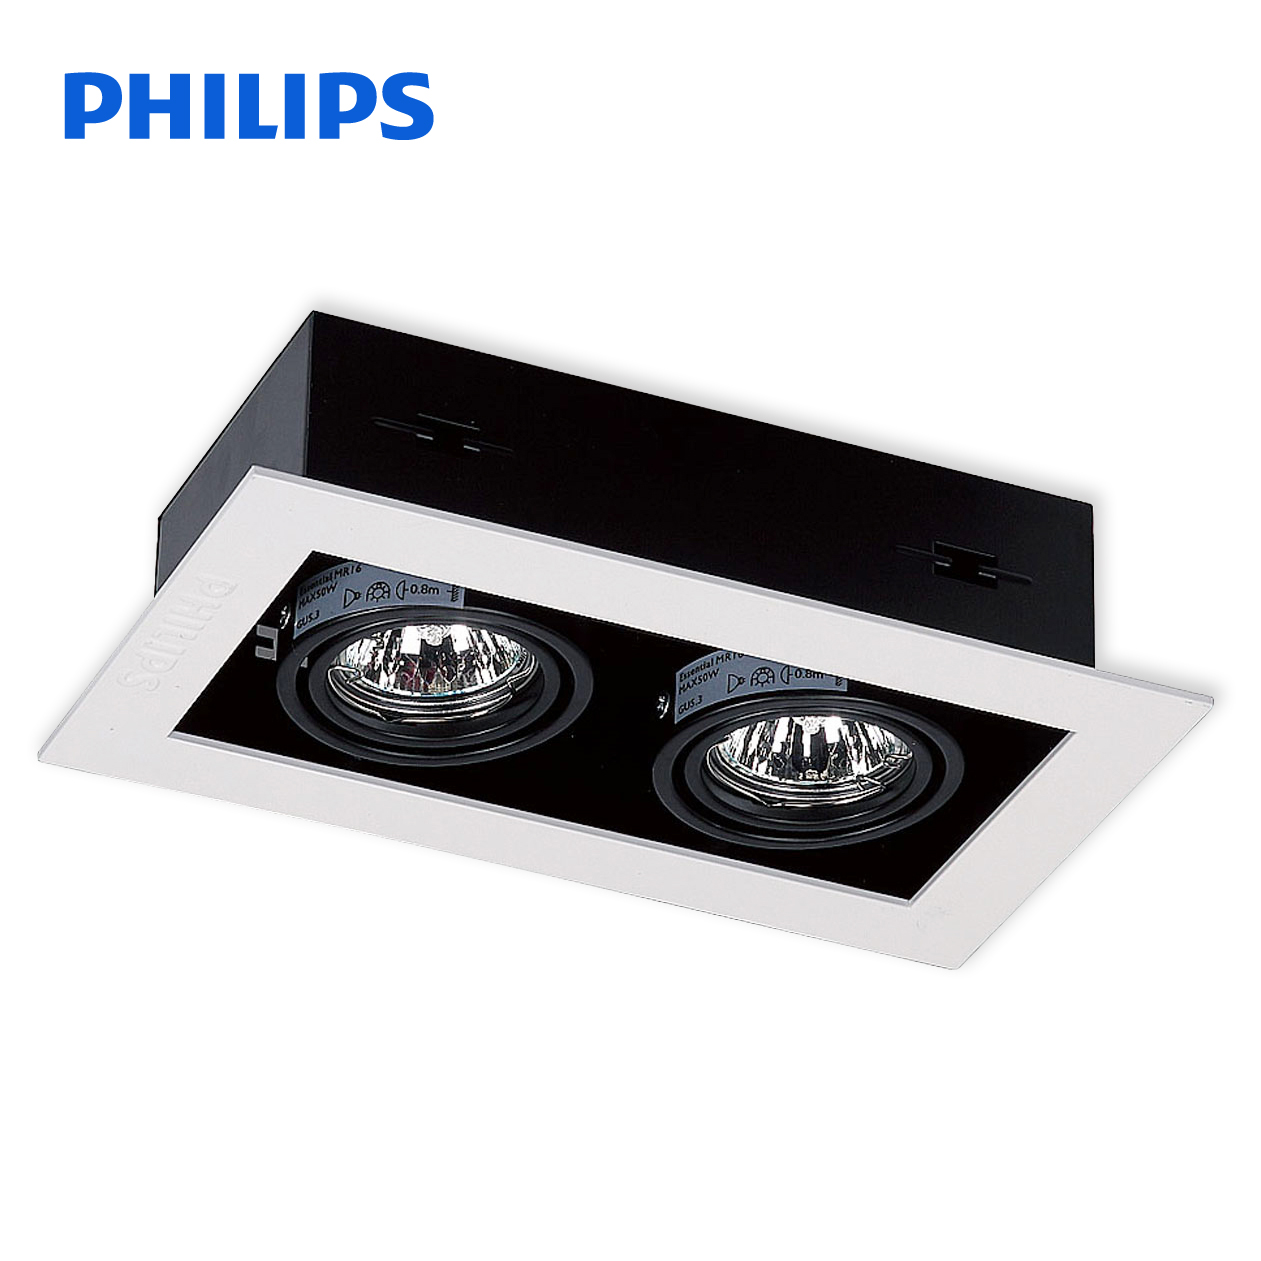 Easy Led Philips Long Easy Led Spotlights Lbx300 Mr16 Single Double Head Daring Lamp Halogen Lamp Cup Bean Gall Grille